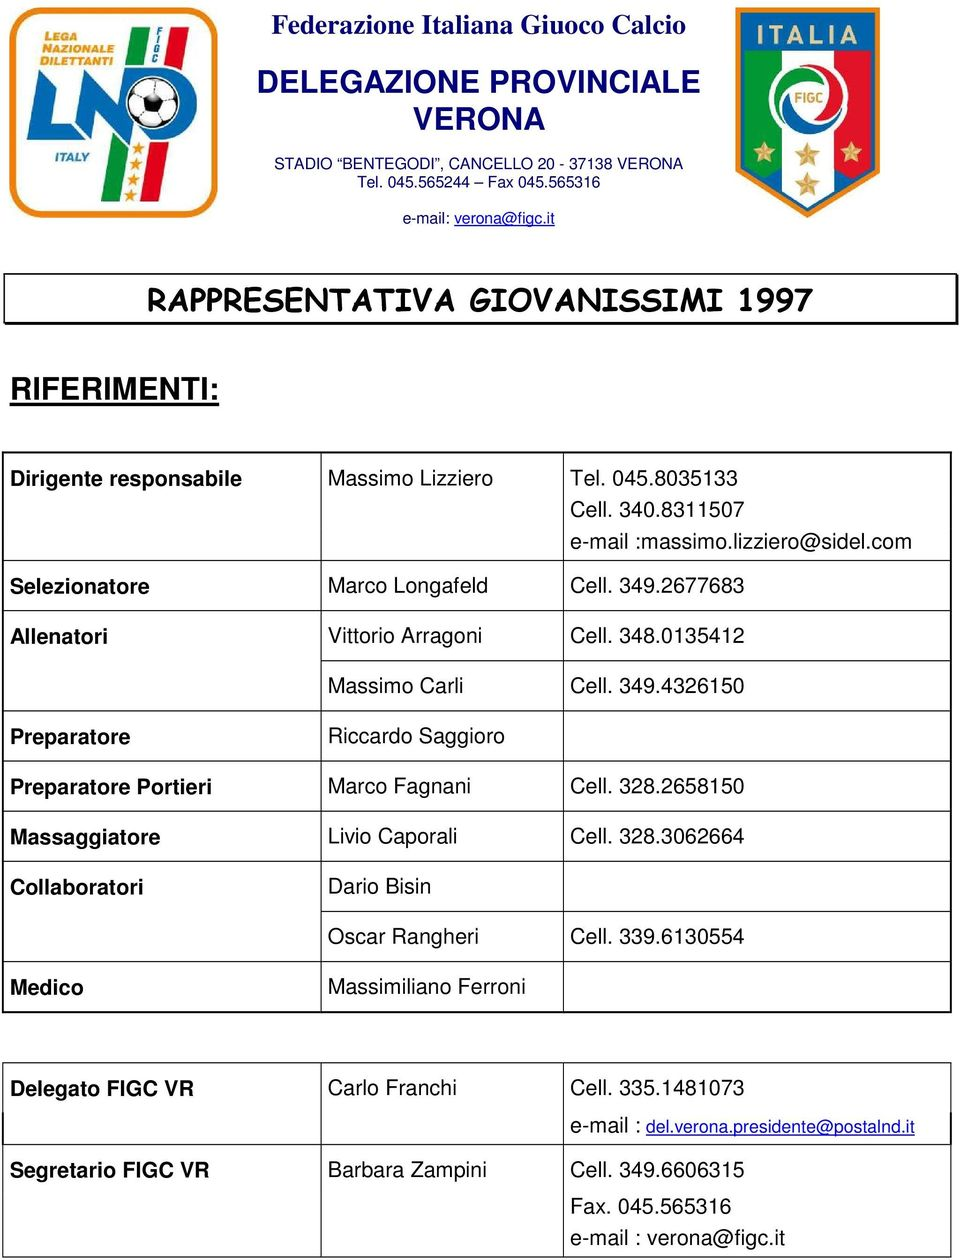 328.2658150 Massaggiatore Livio Caporali Cell. 328.3062664 Collaboratori Dario Bisin Oscar Rangheri Cell. 339.